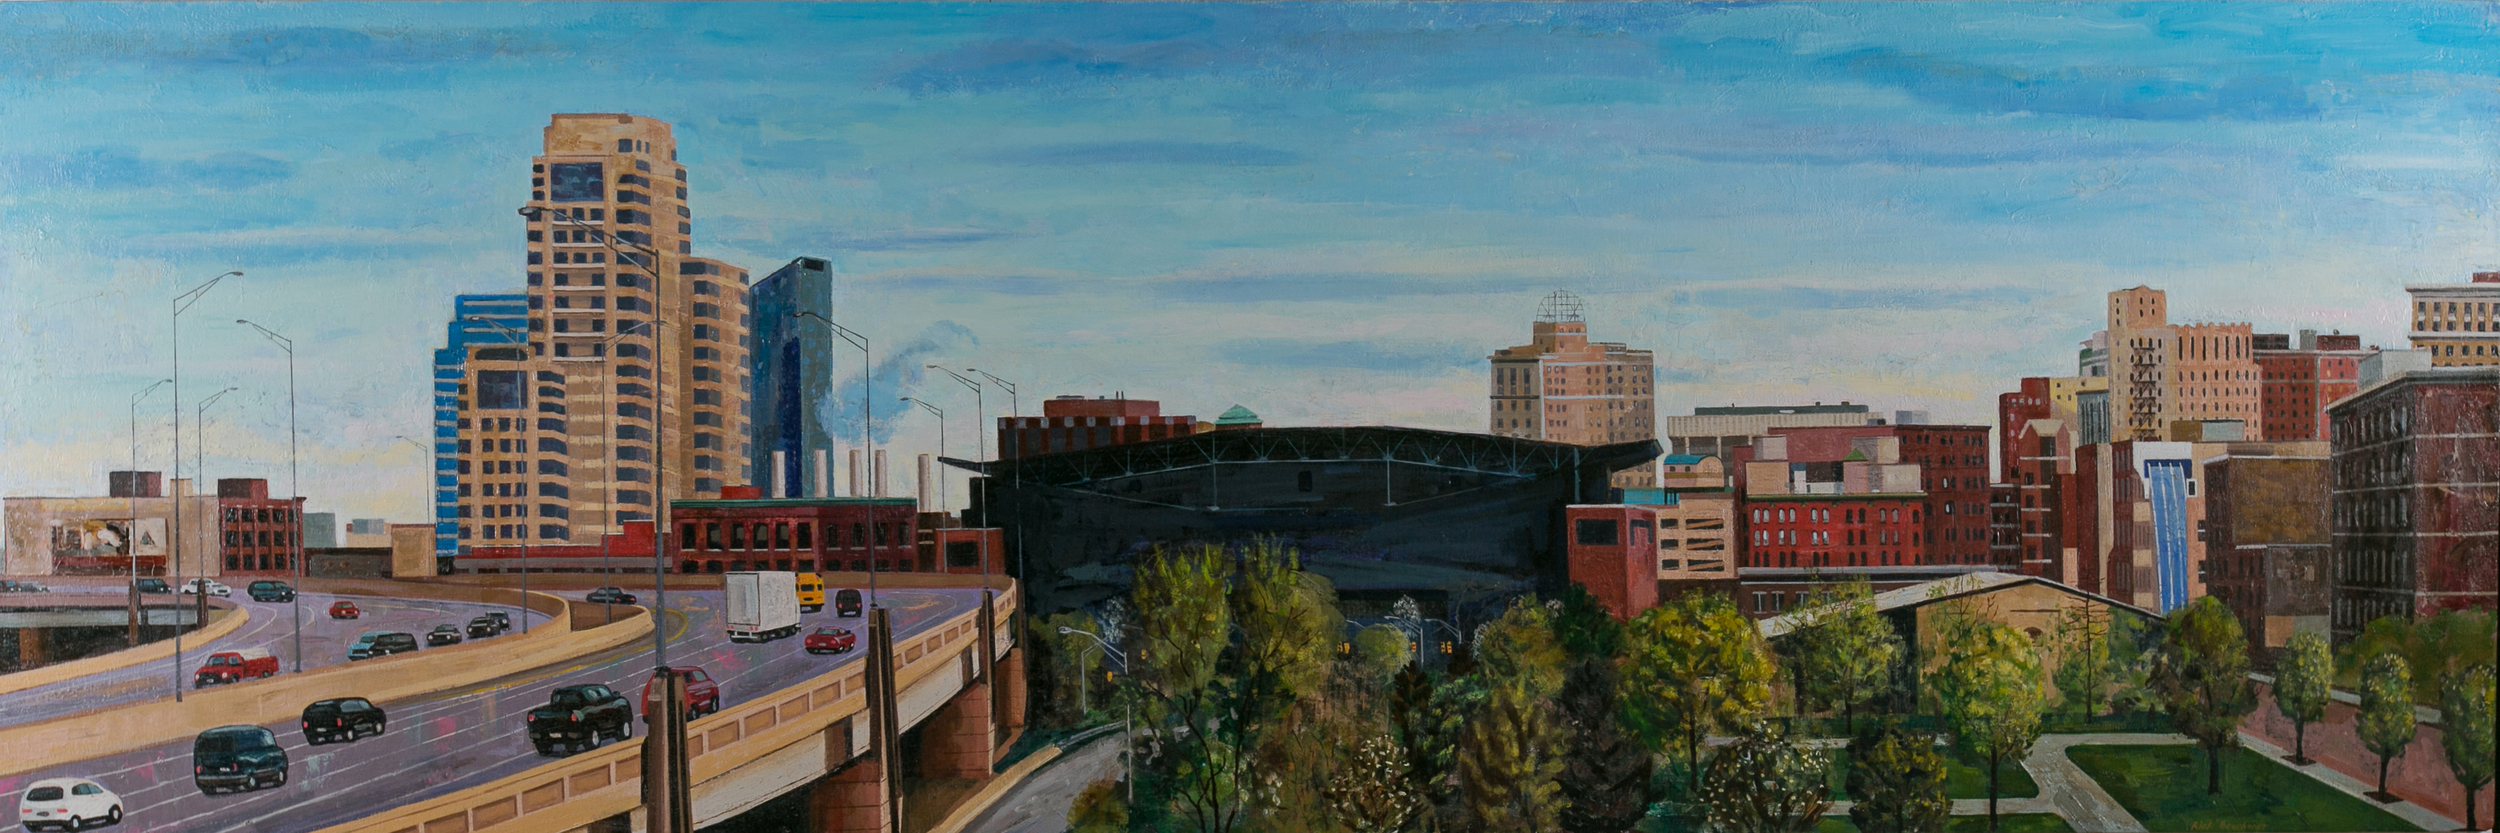 Grand Rapids, View from the Wealthy Street Overpass